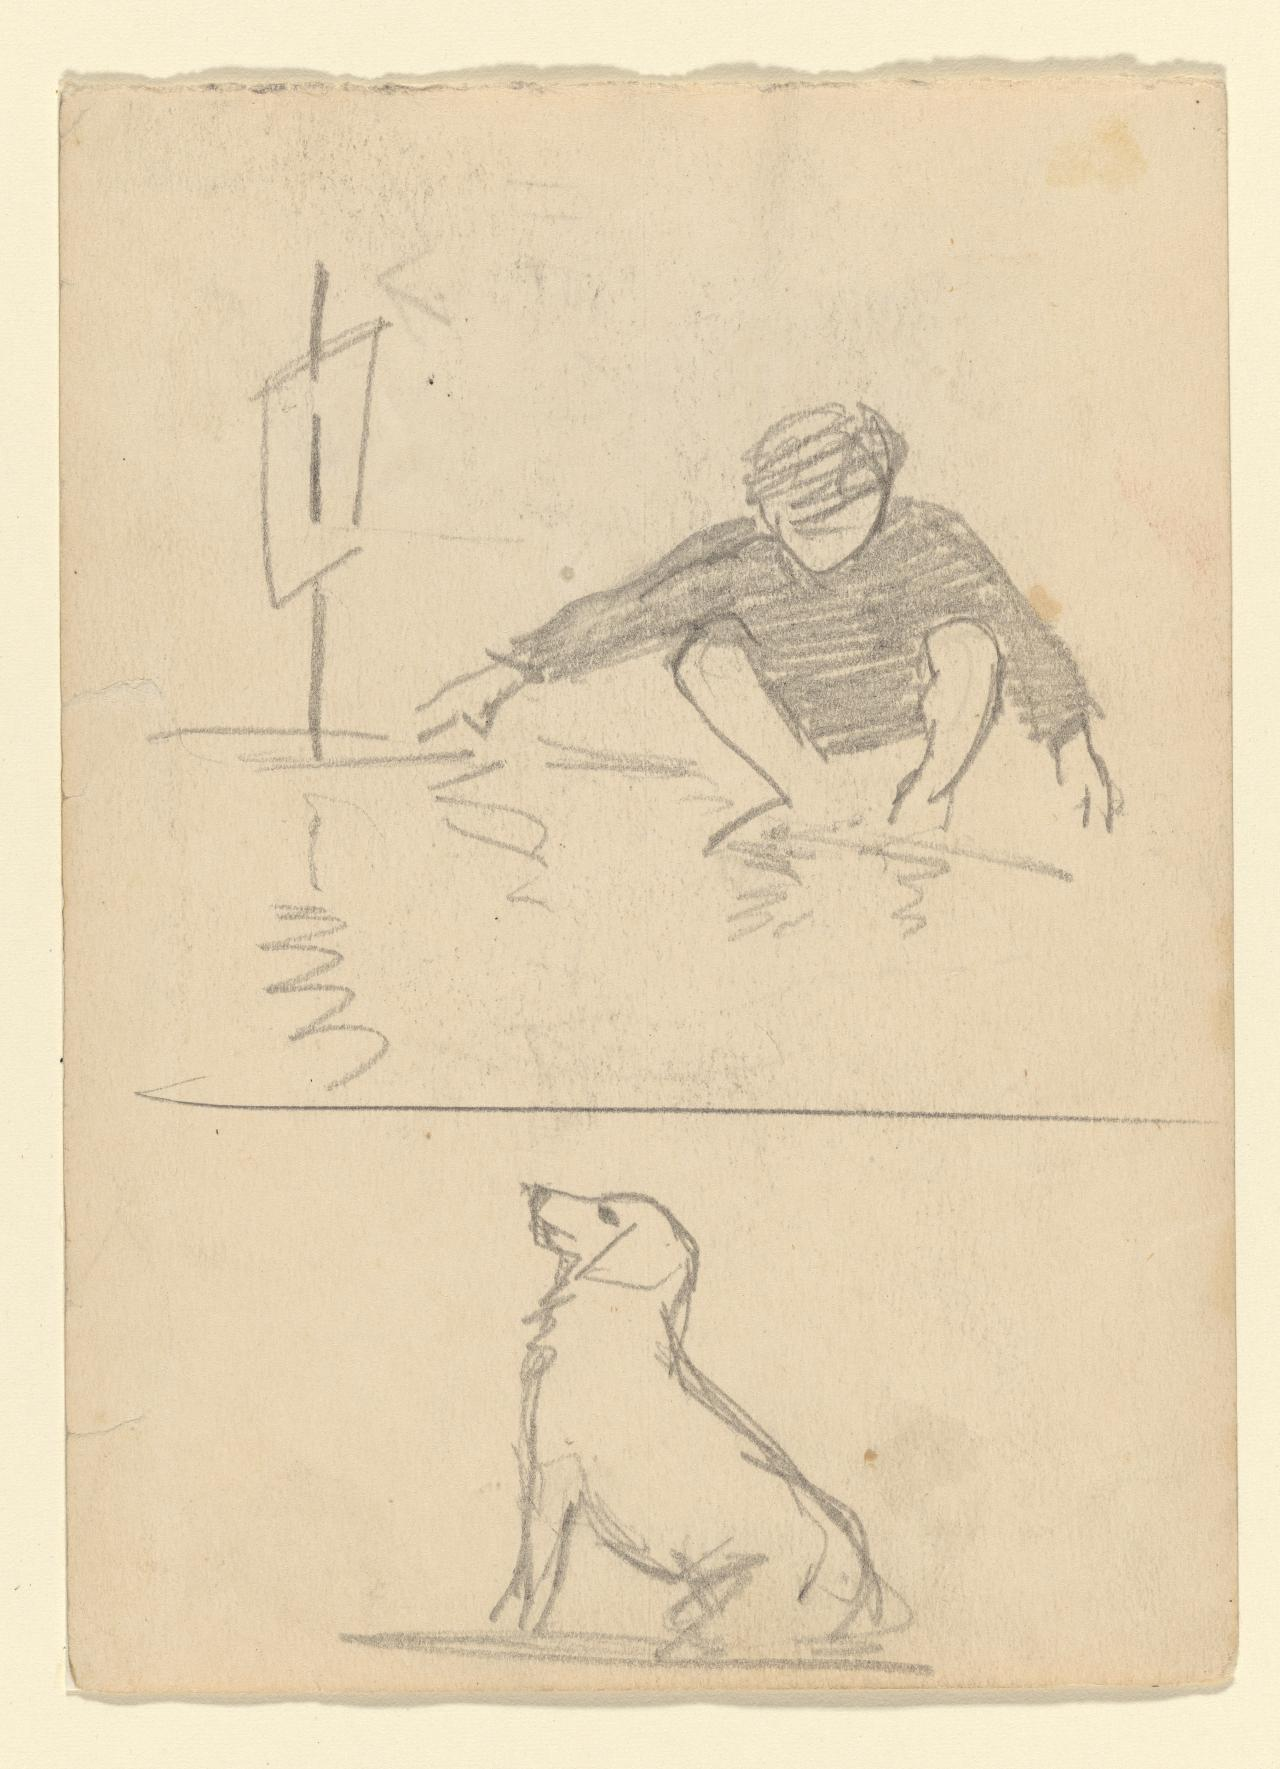 Sketches of a boy sailing a boat and of a dog